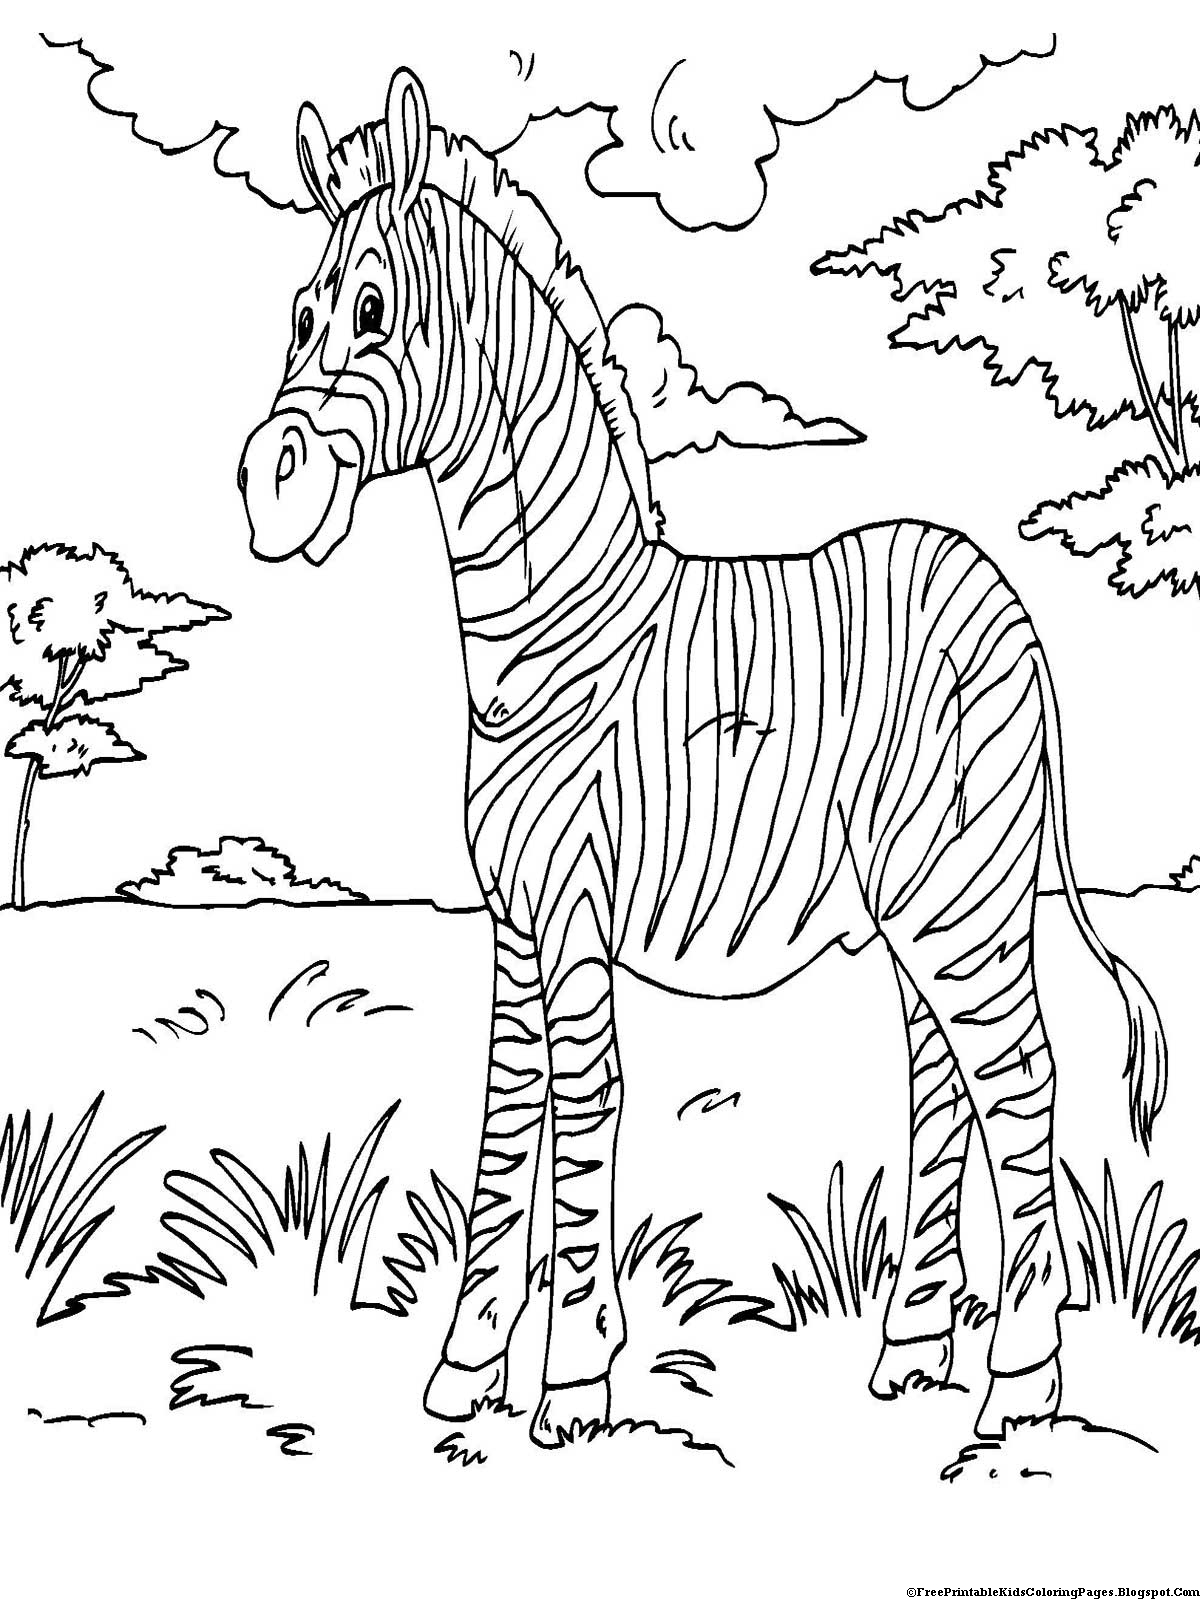 free printable kid coloring pages | Zebra Coloring Pages - Free Printable Kids Coloring Pages